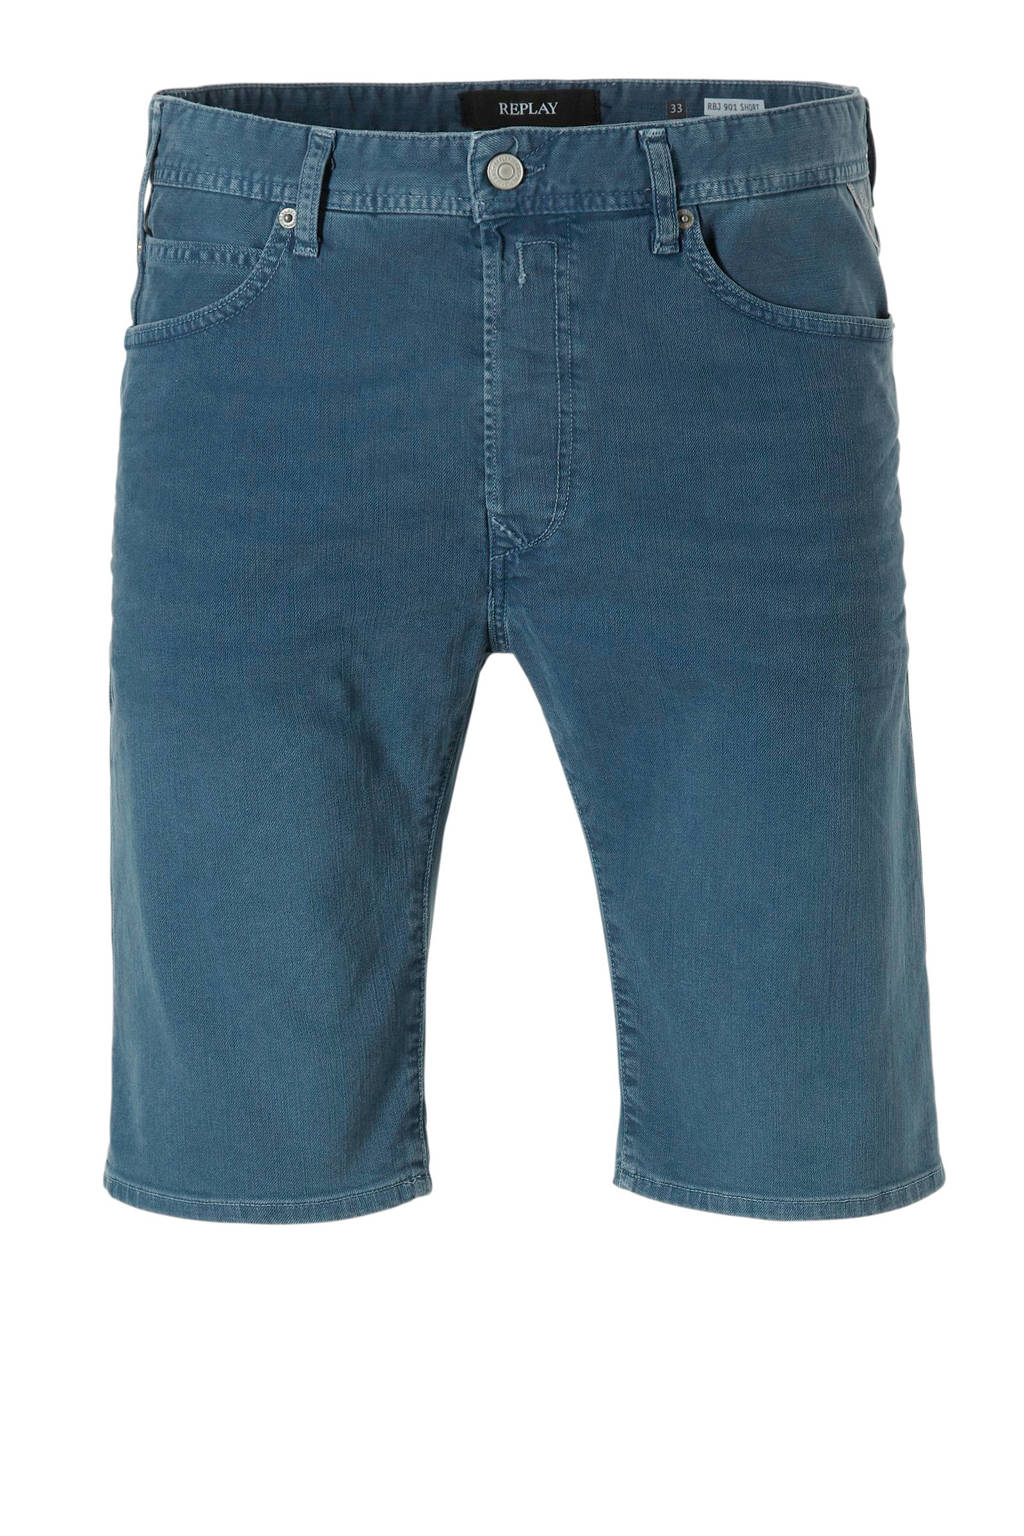 REPLAY regular fit jeans short, Storm Blue